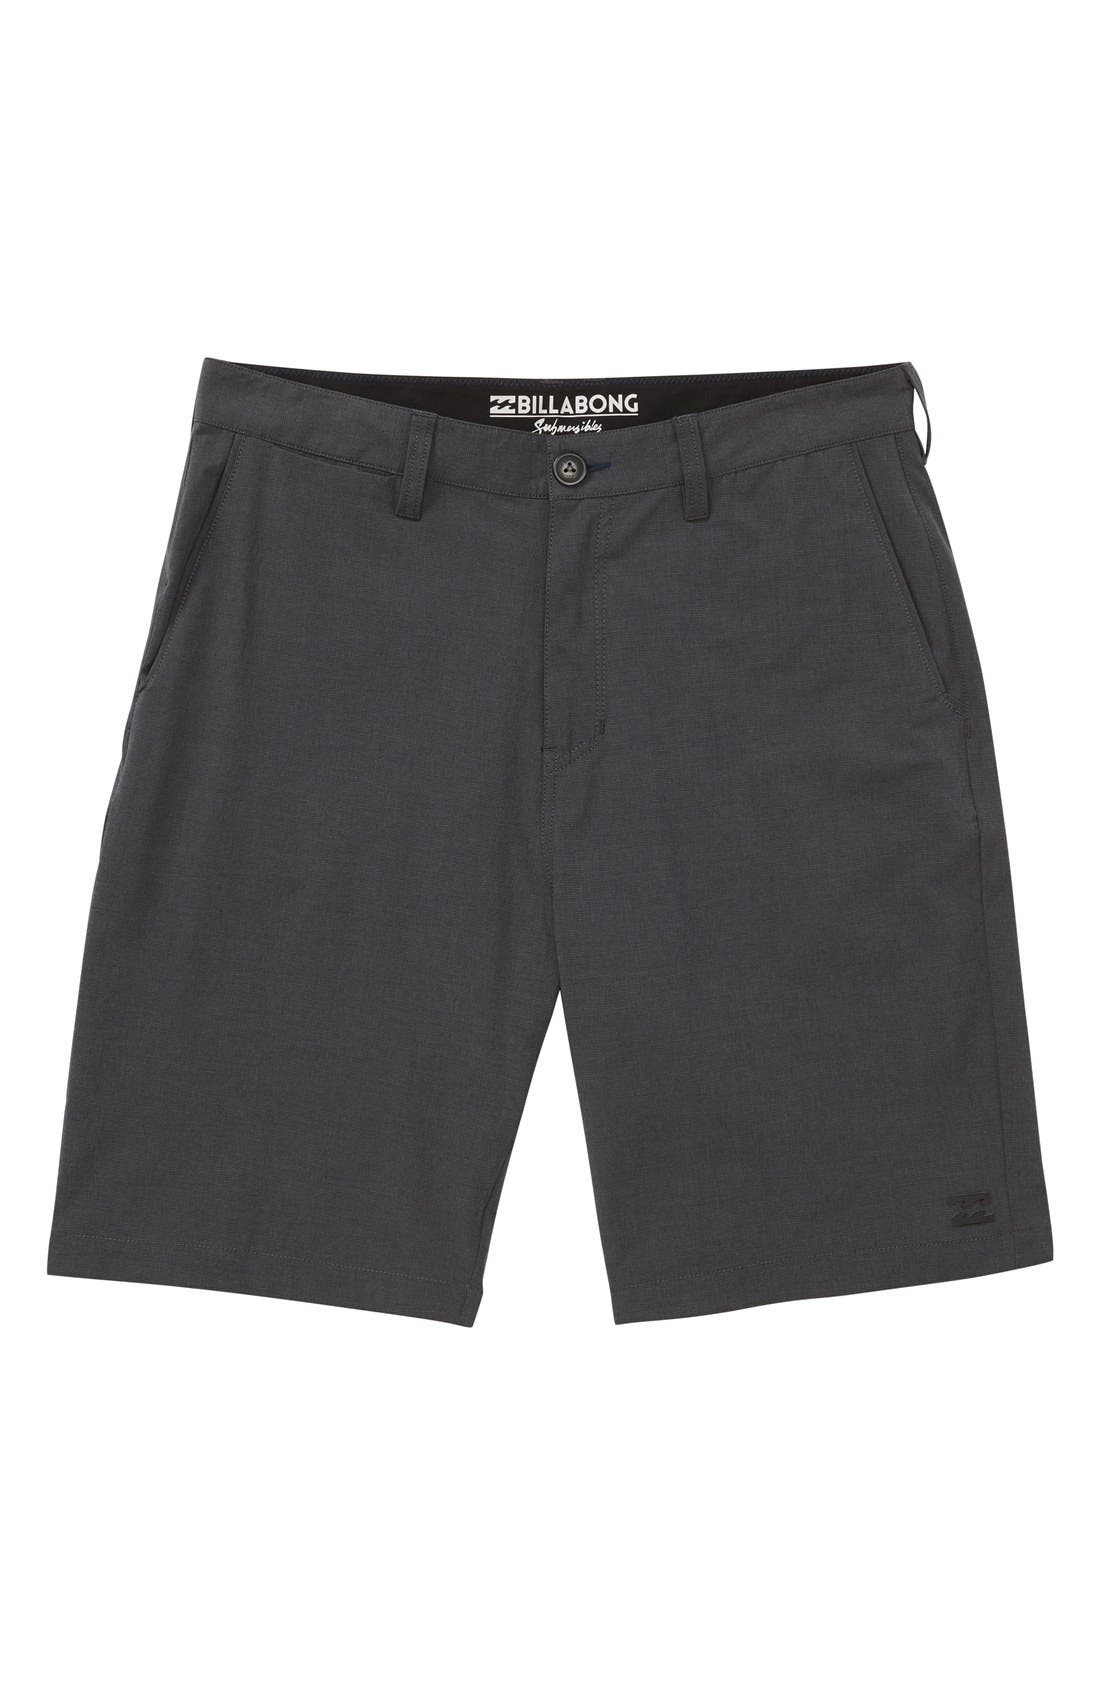 Crossfire X Submersible Hybrid Shorts,                             Main thumbnail 4, color,